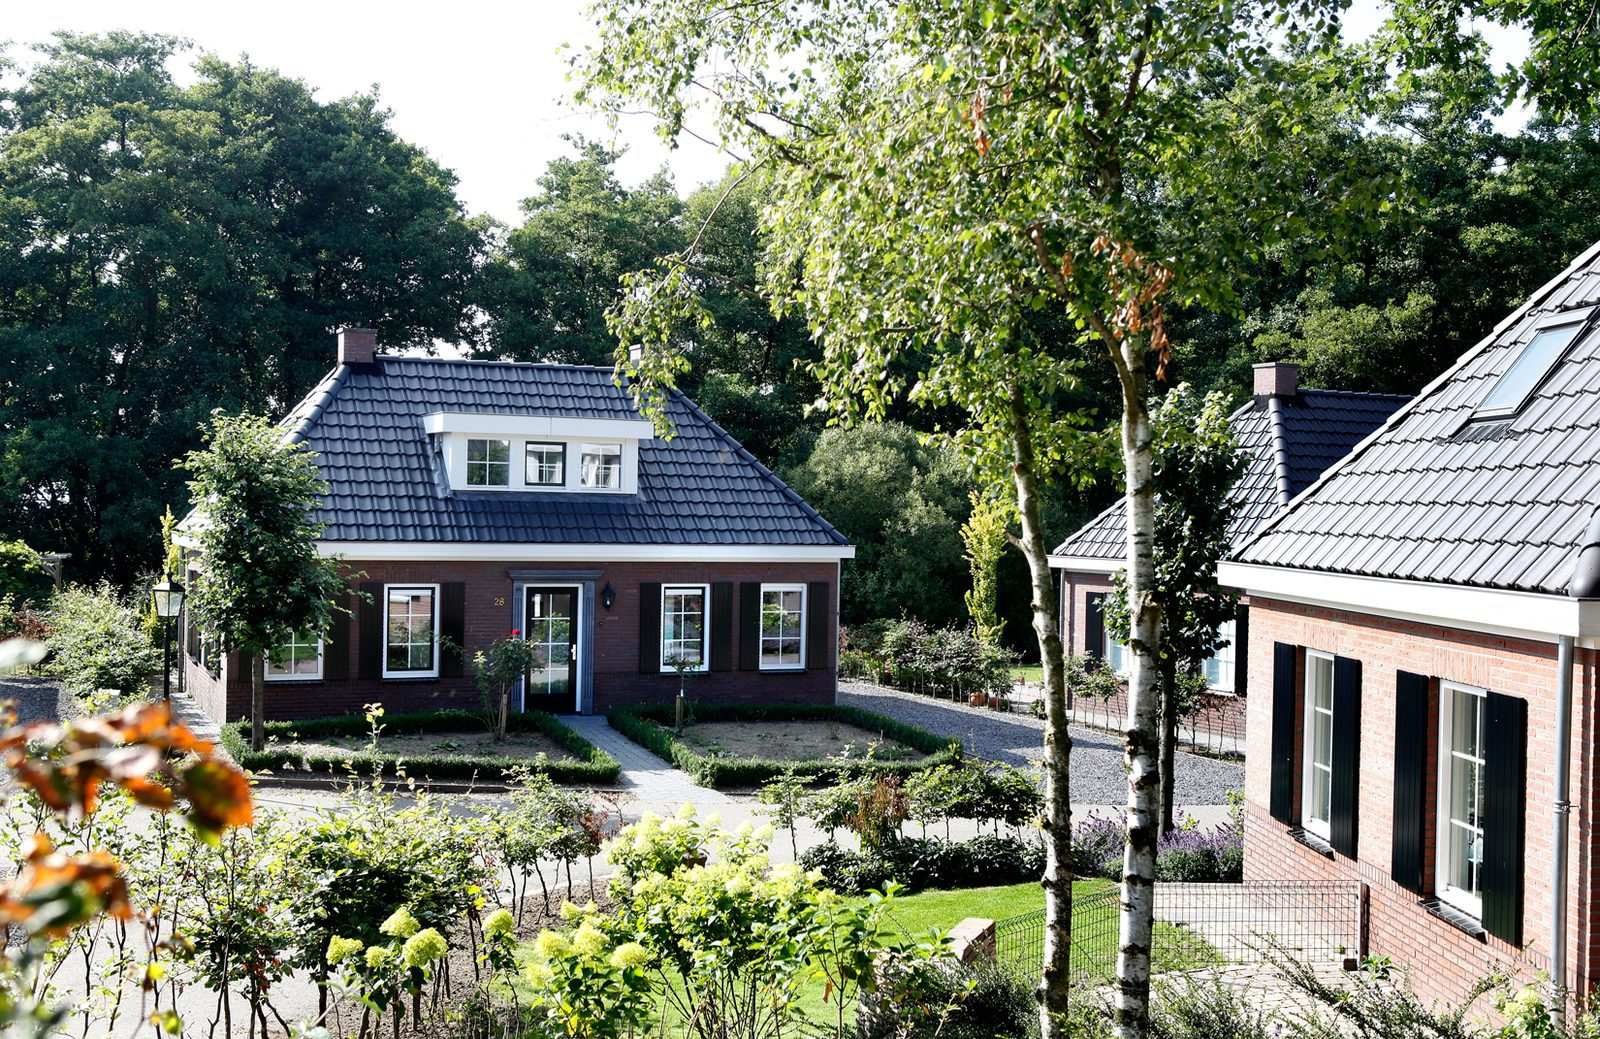 Rent a holiday home Ascension Day Veluwe